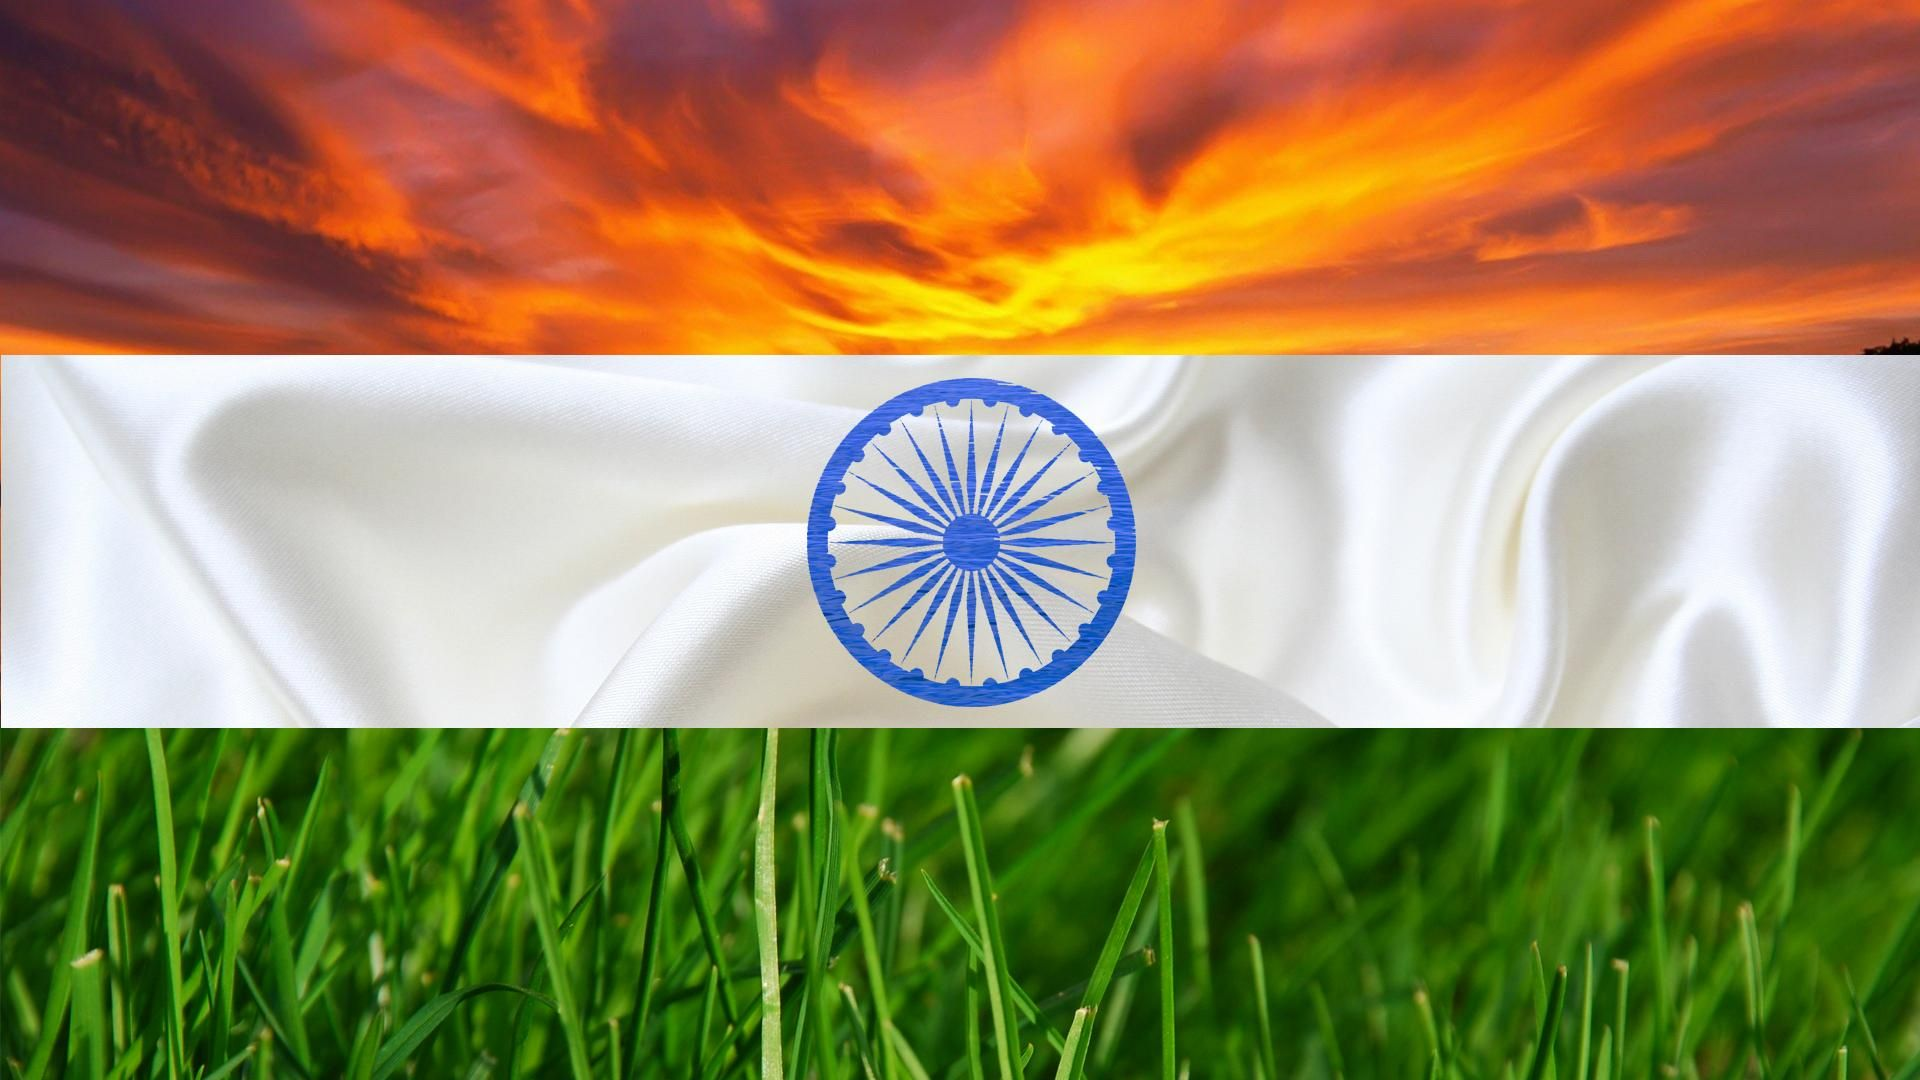 Indian Flag Hd Wallpapers Images Travel Pinterest